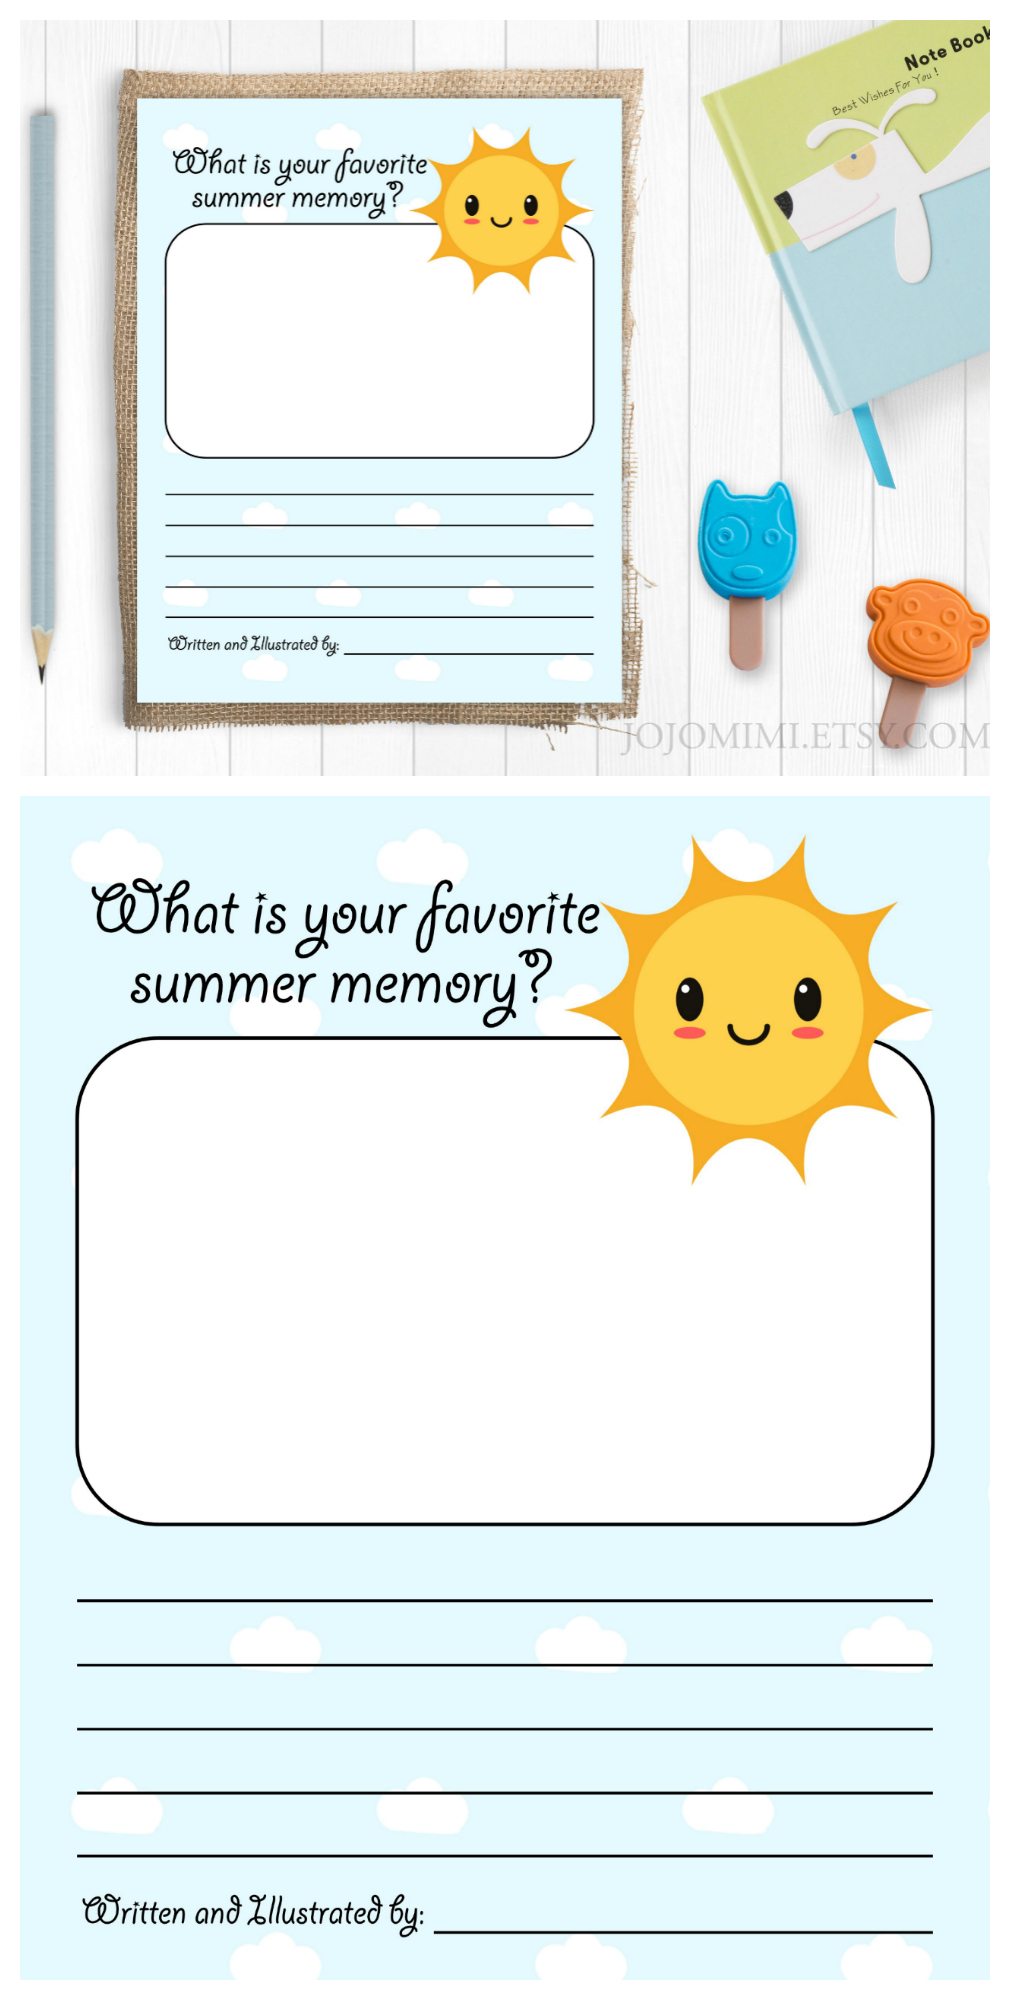 Draw and Write Summer Activity Page - Free Printable!